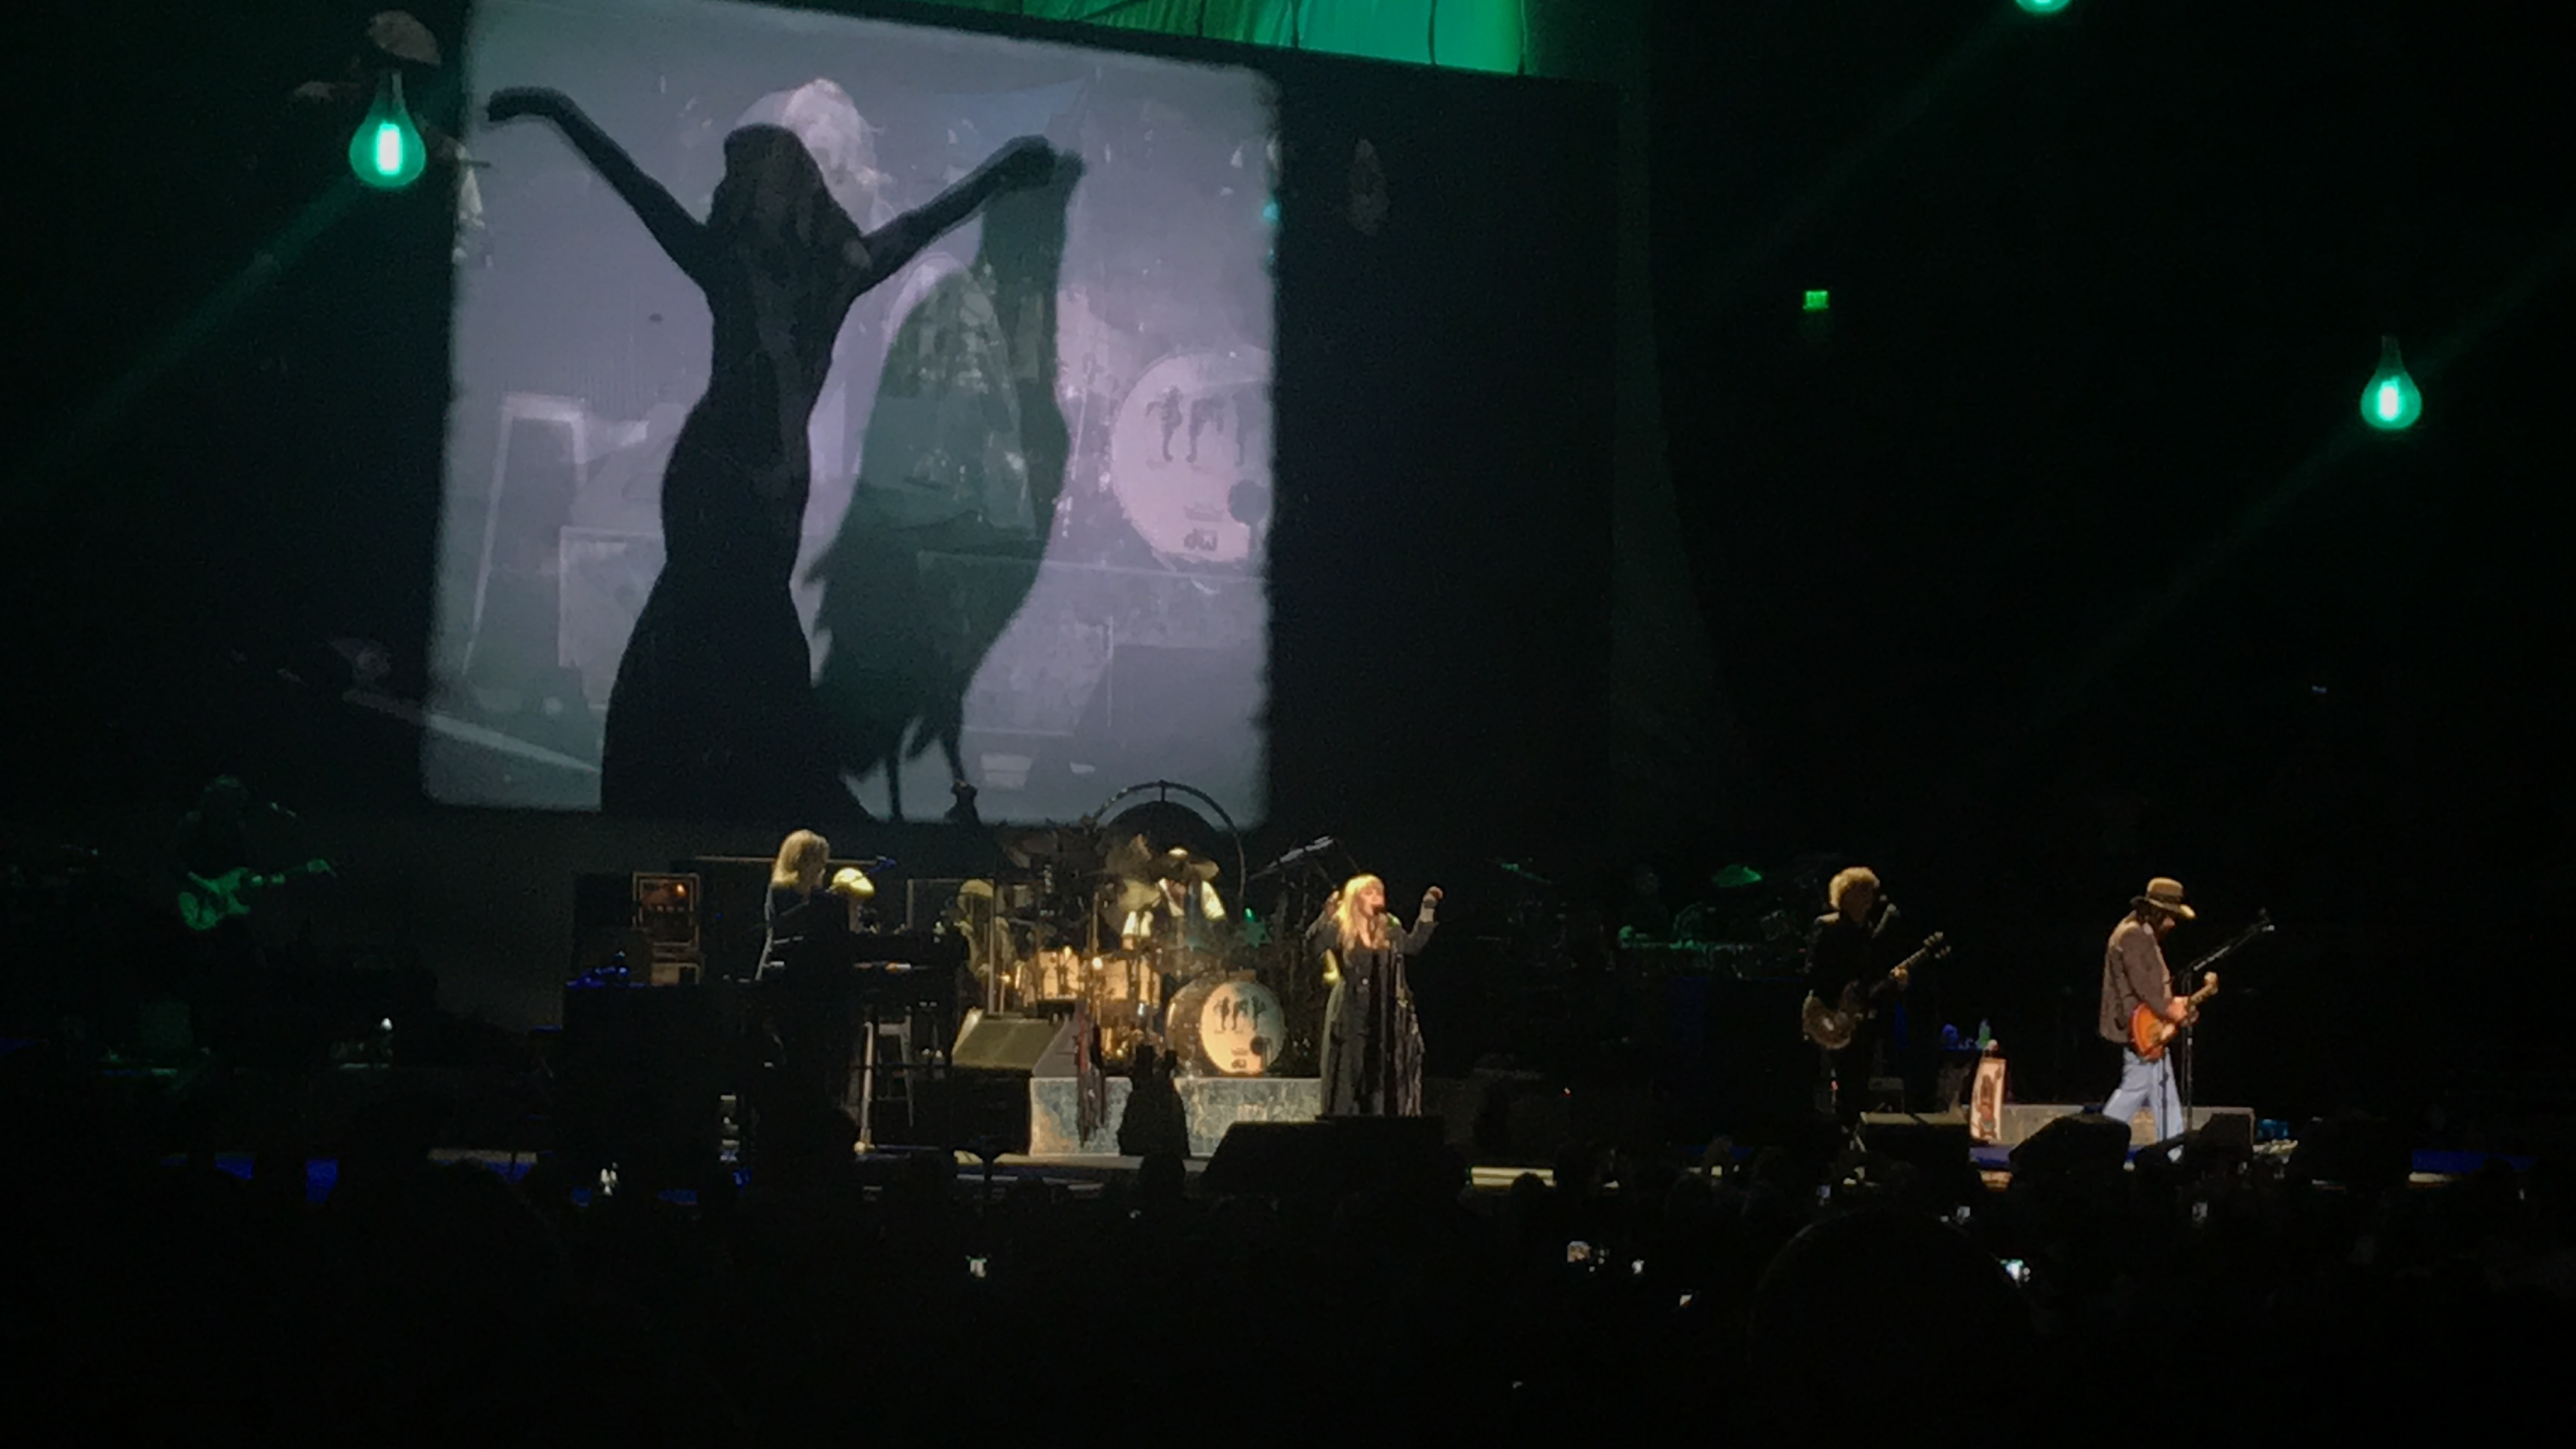 The background screen shows the silhouette of a girl dancing and a raven. Stevie Nicks is in the middle singing with her arms reached to the sky, to her left Christine McVie plays the keyboard, and to her left Mike Campbell plays guitar.